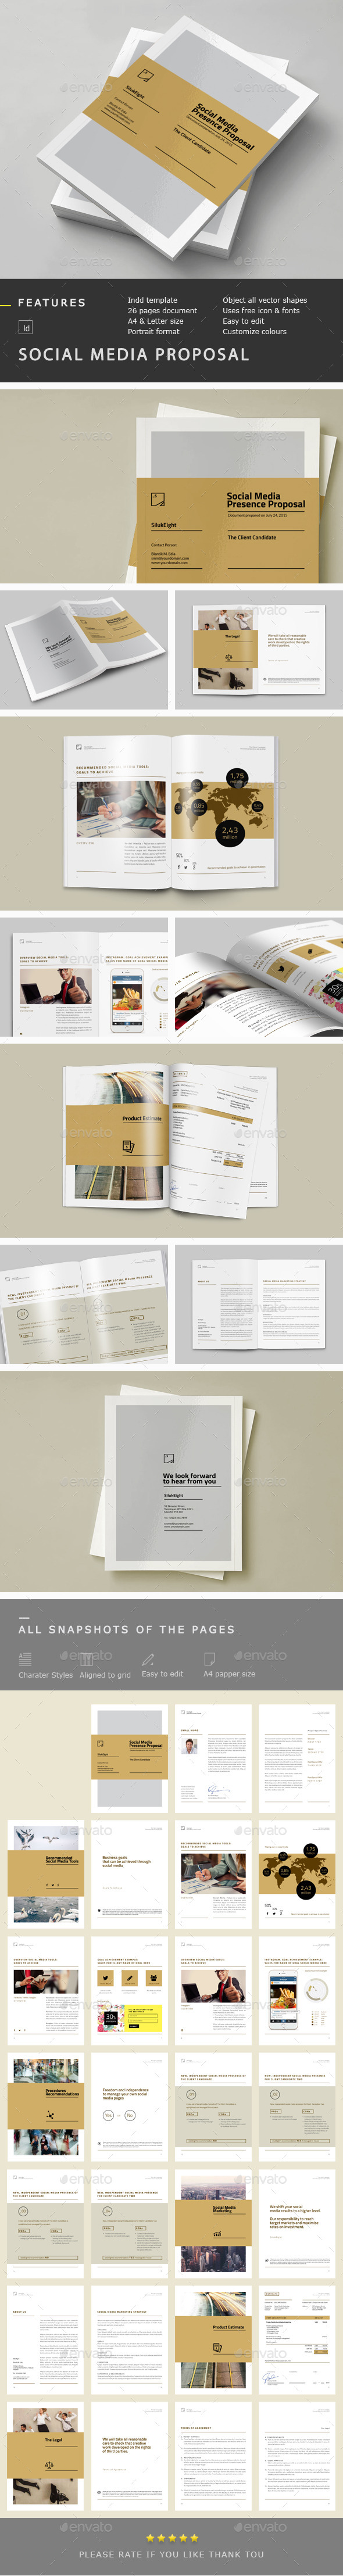 Social Media Proposal - Proposals & Invoices Stationery